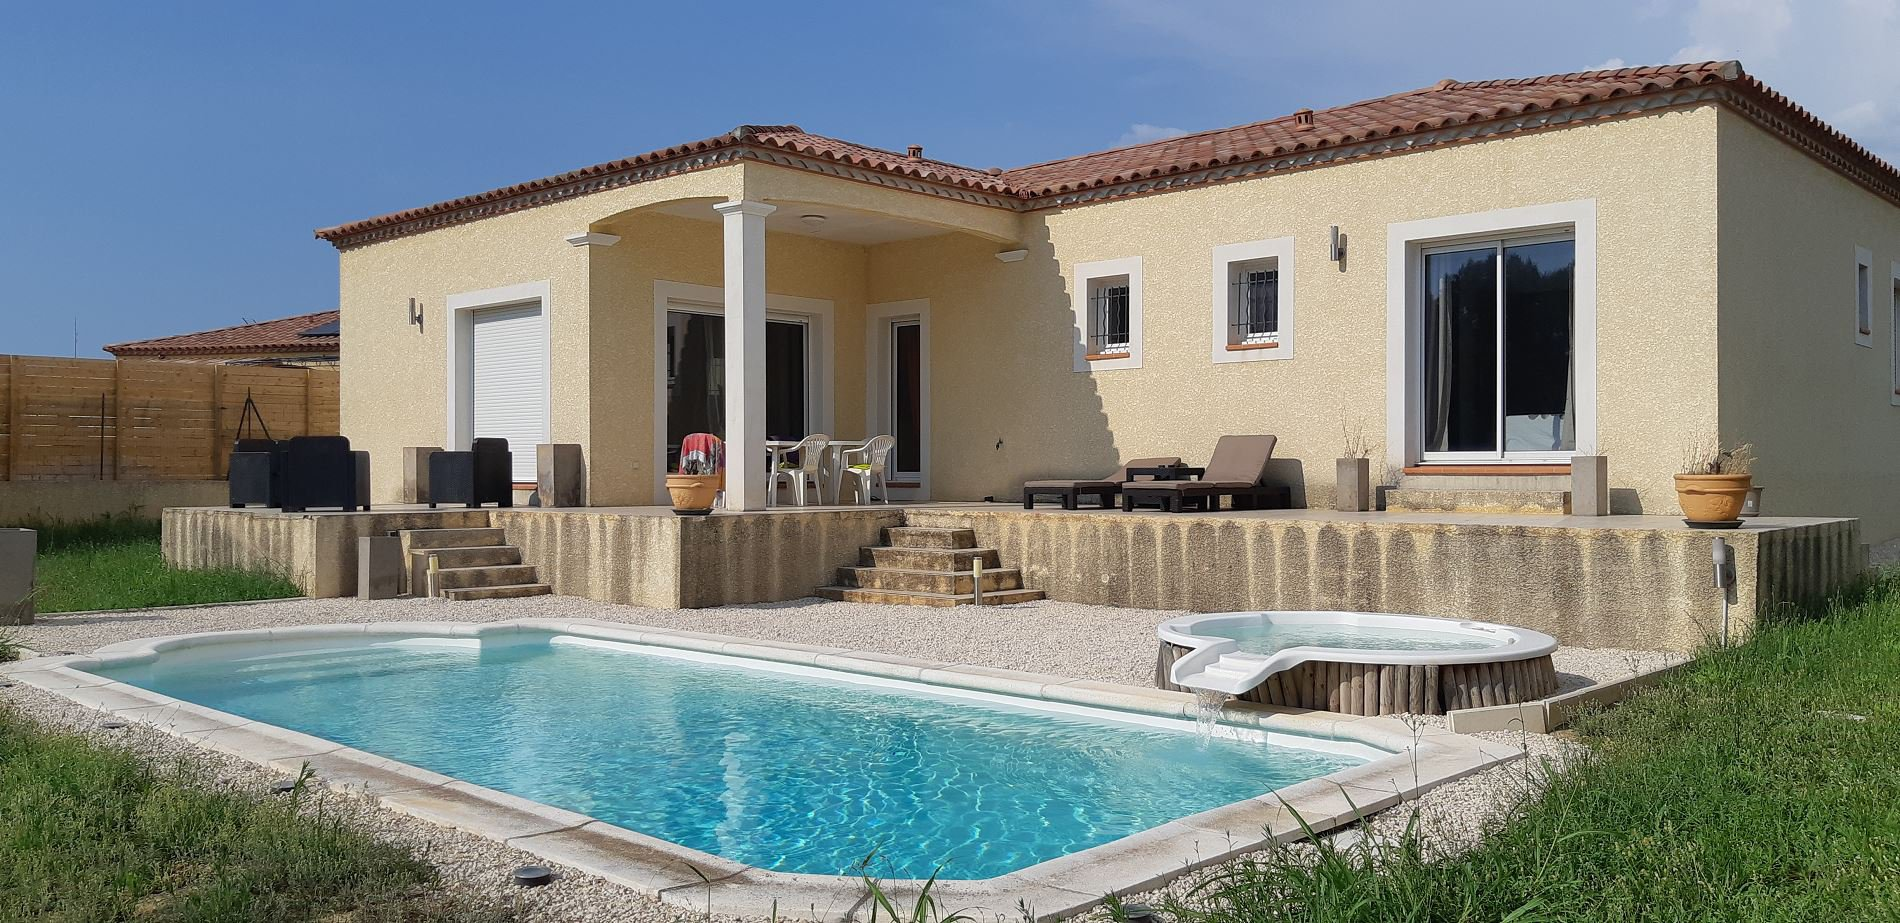 Modern villa with pool and garden in a lovely village close to Narbonne